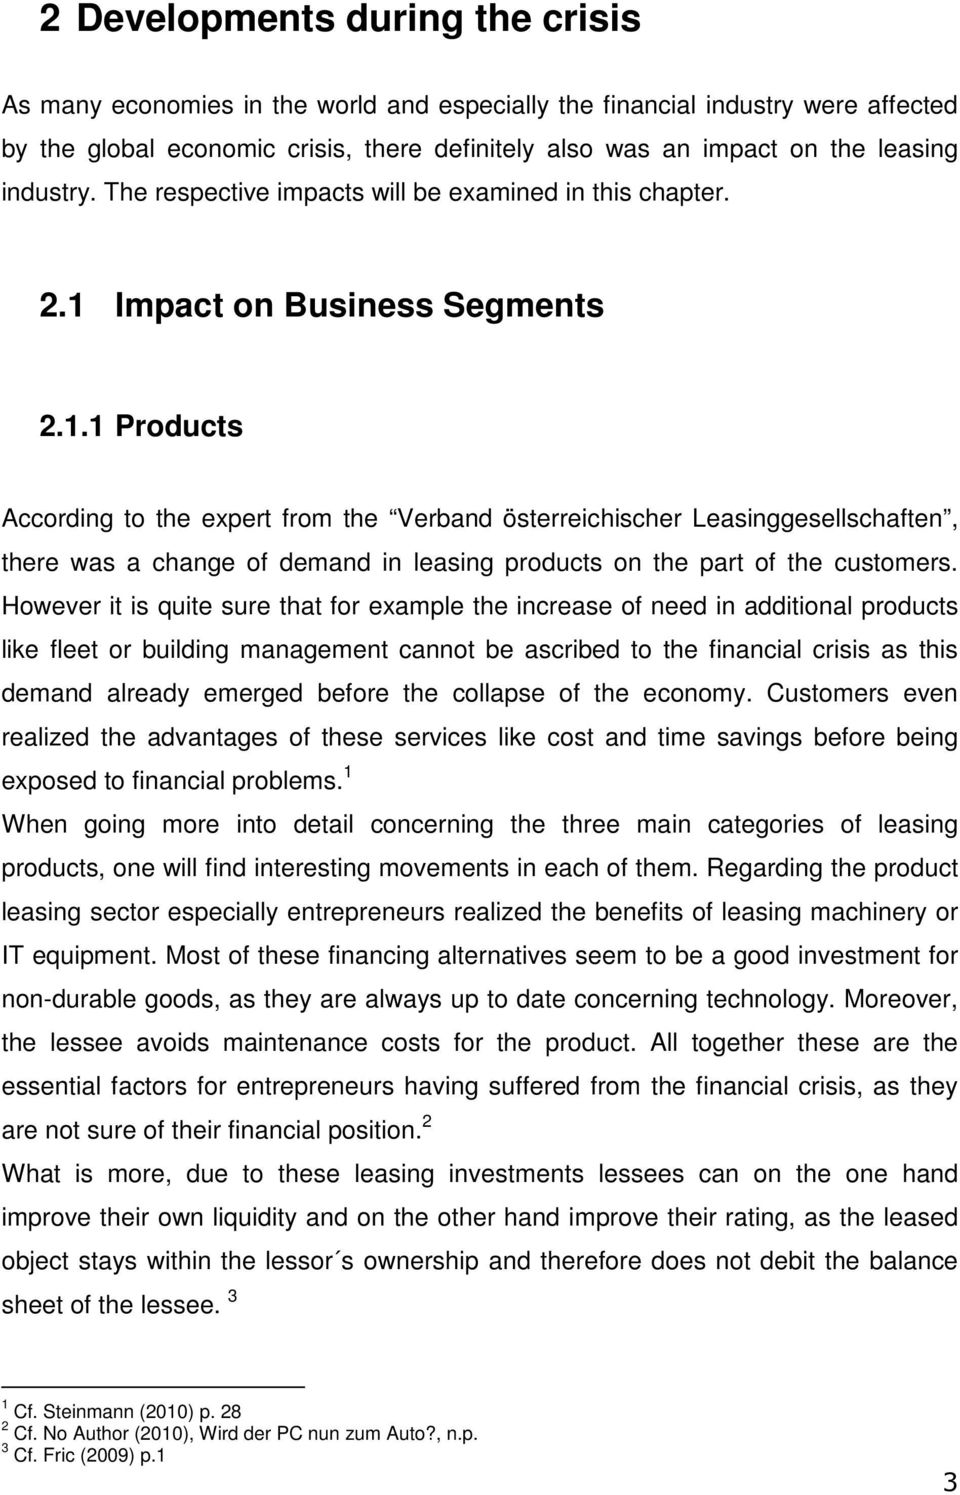 Impact on Business Segments 2.1.